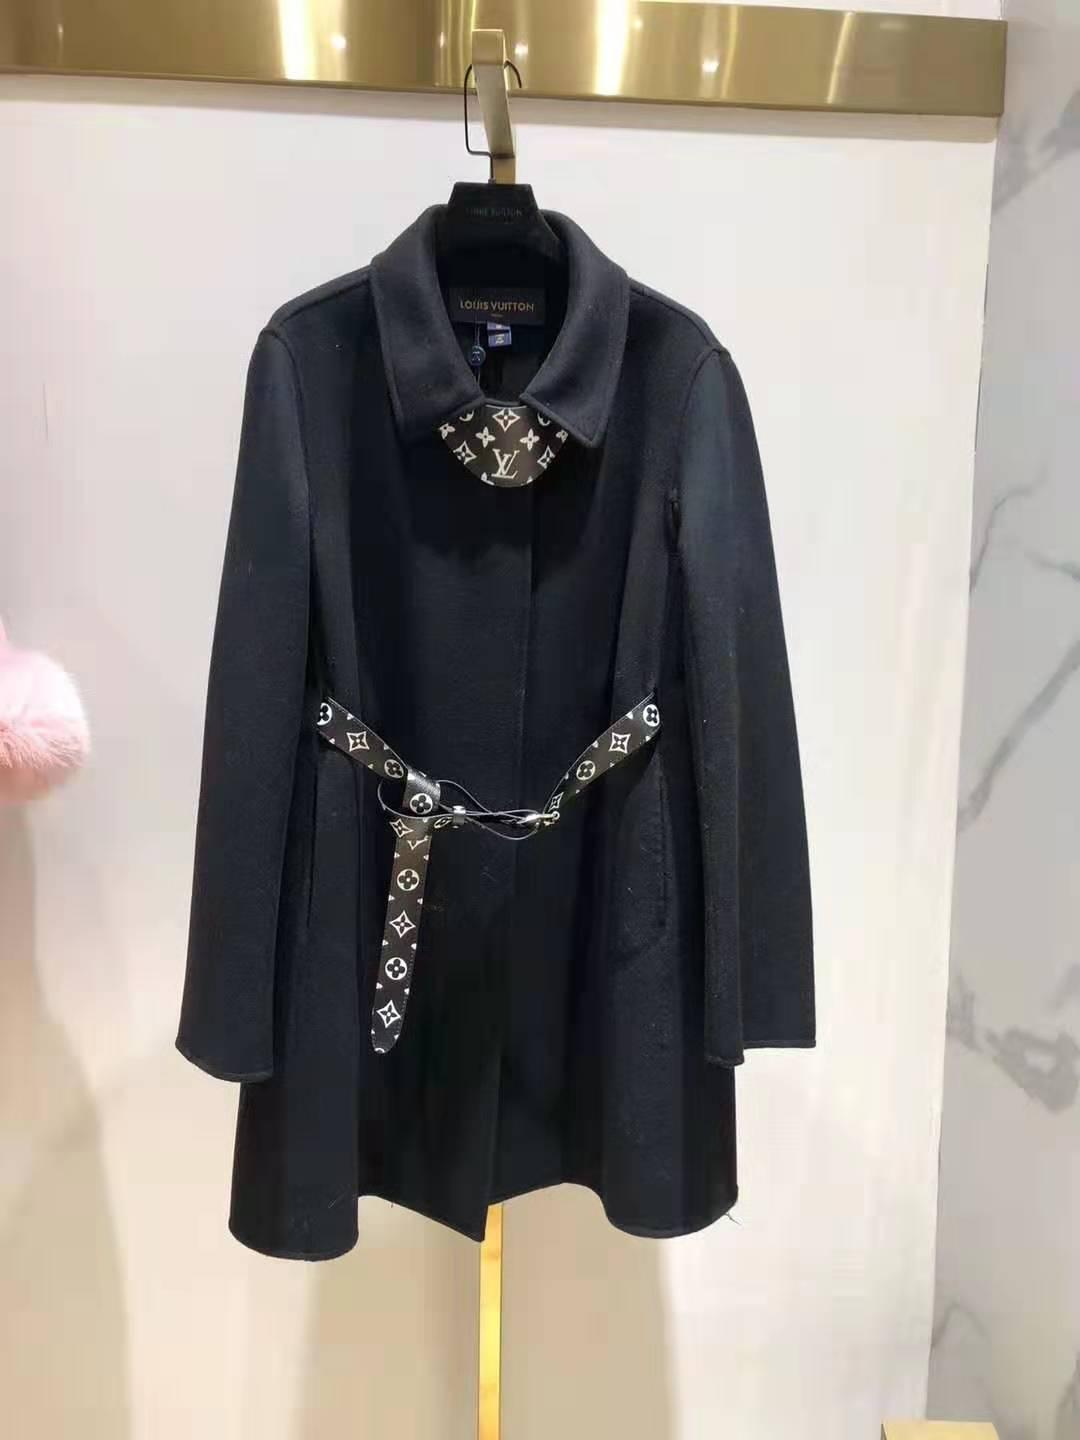 LV Belted Trapeze Coat Monogram canvas belt the traditionnal cape shape 10